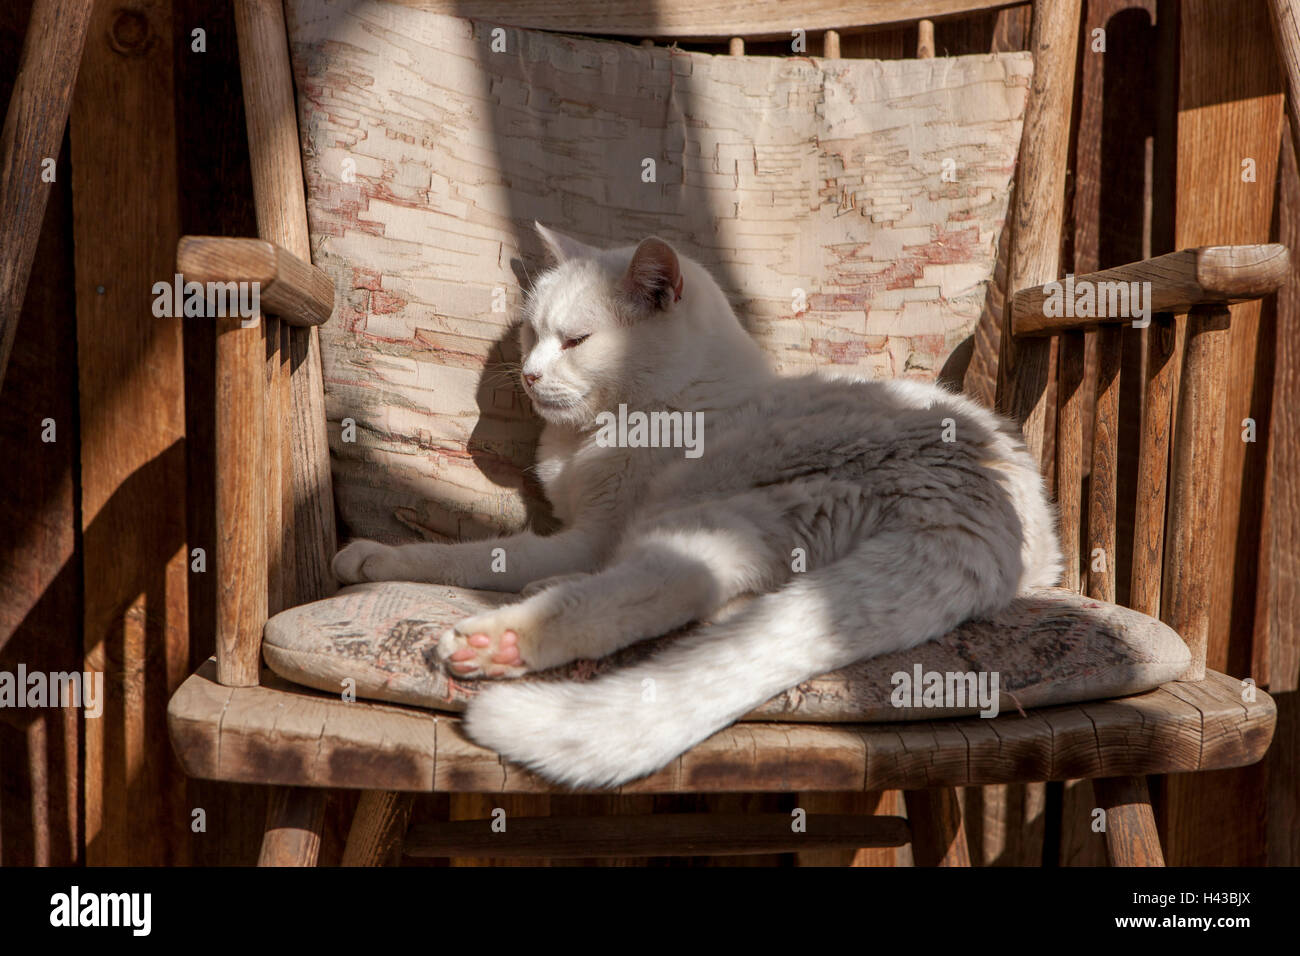 Comfy cat in chair. - Stock Image